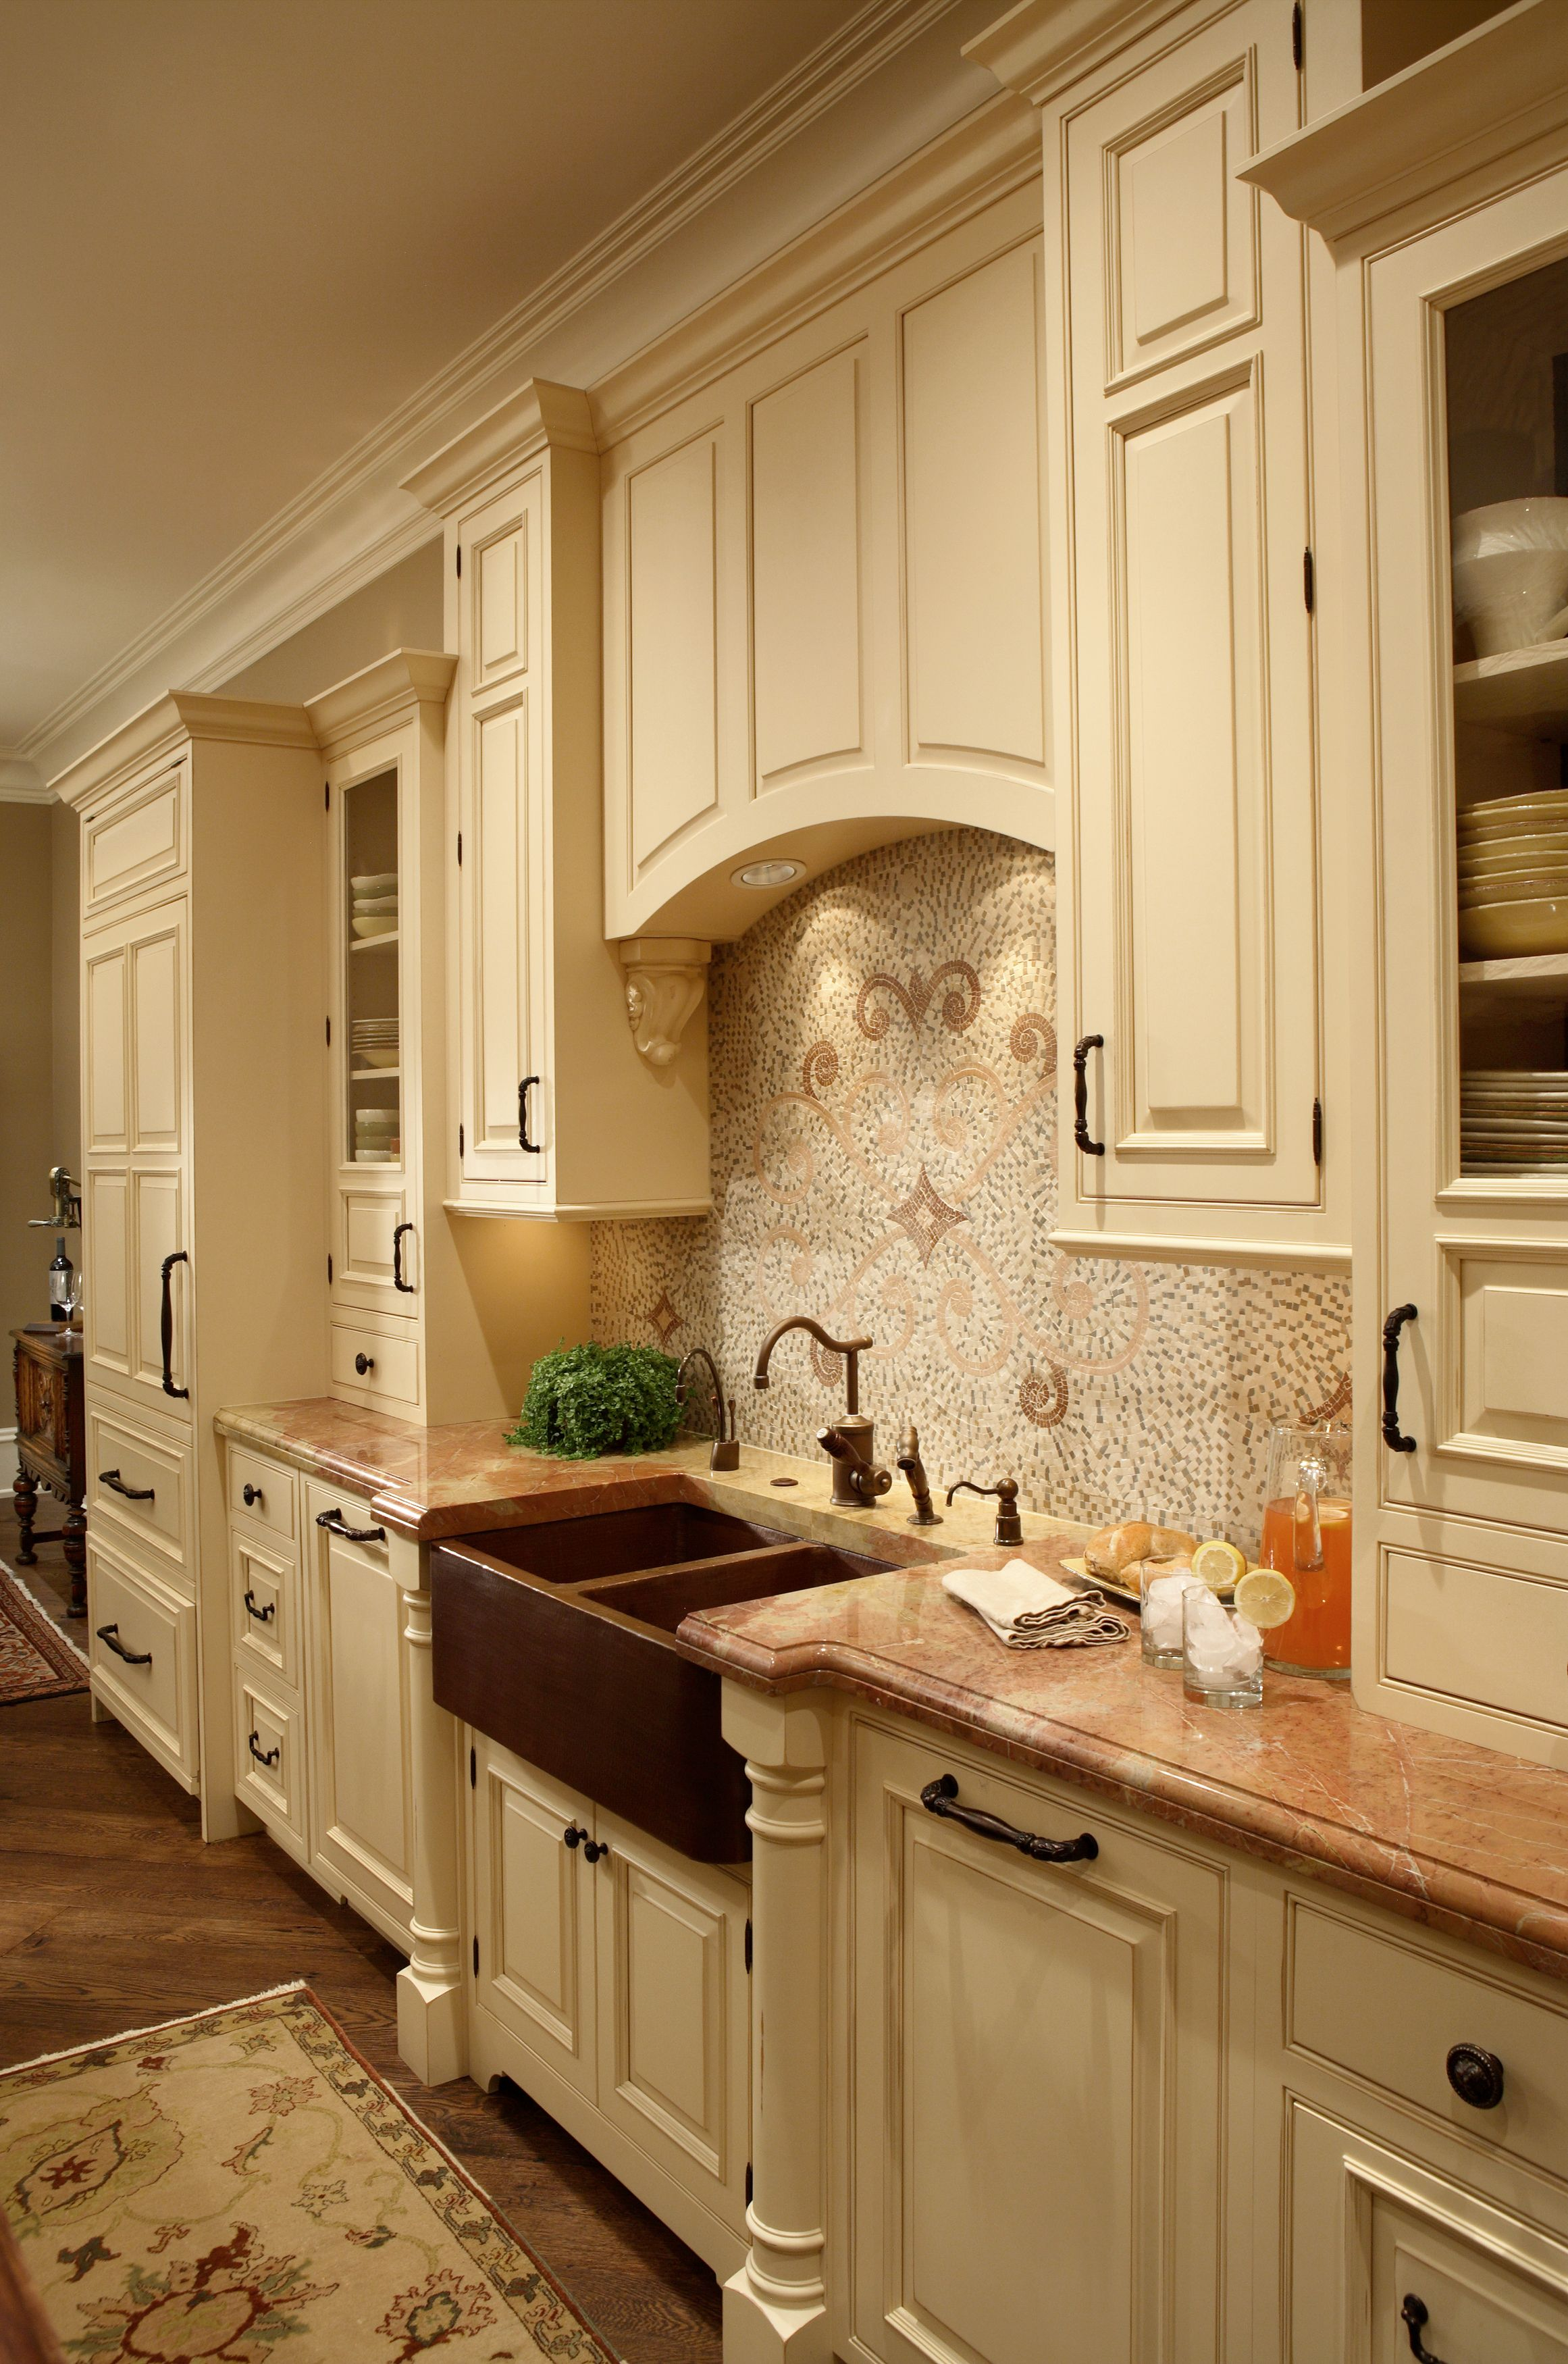 Woodharborcc Beaded Inset Cabinetry Features Worthington Door Style With Custom Enamel With R Kitchen Inspirations Kitchen Cabinets In Bathroom Tuscan Kitchen